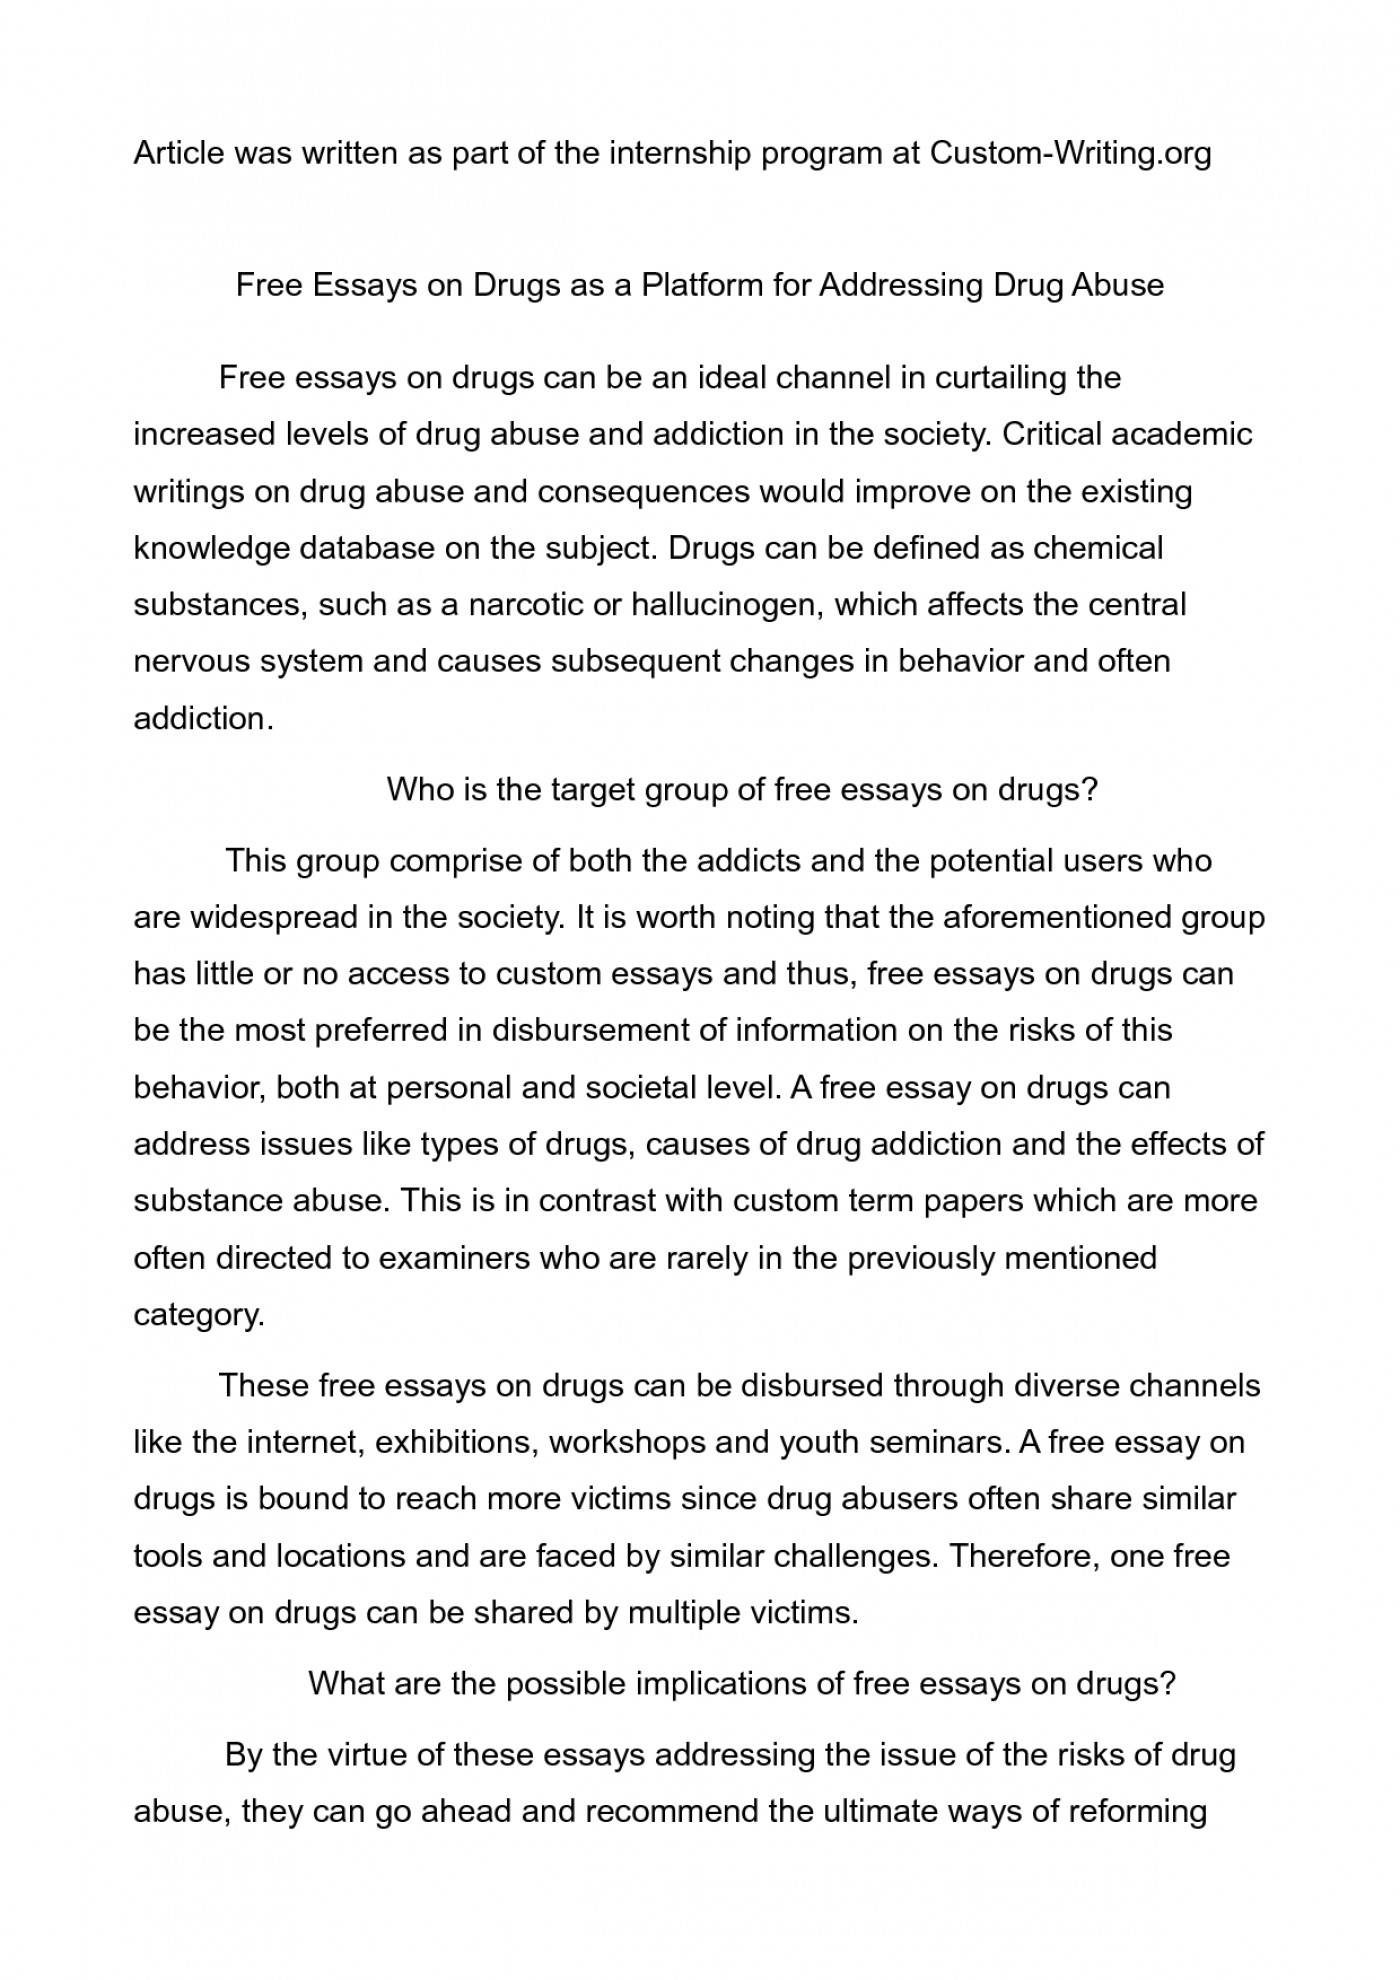 009 Argumentative Essay About Drugs Amazing Outline 6th Grade Persuasive/argumentative Definition Topics Sports 1400